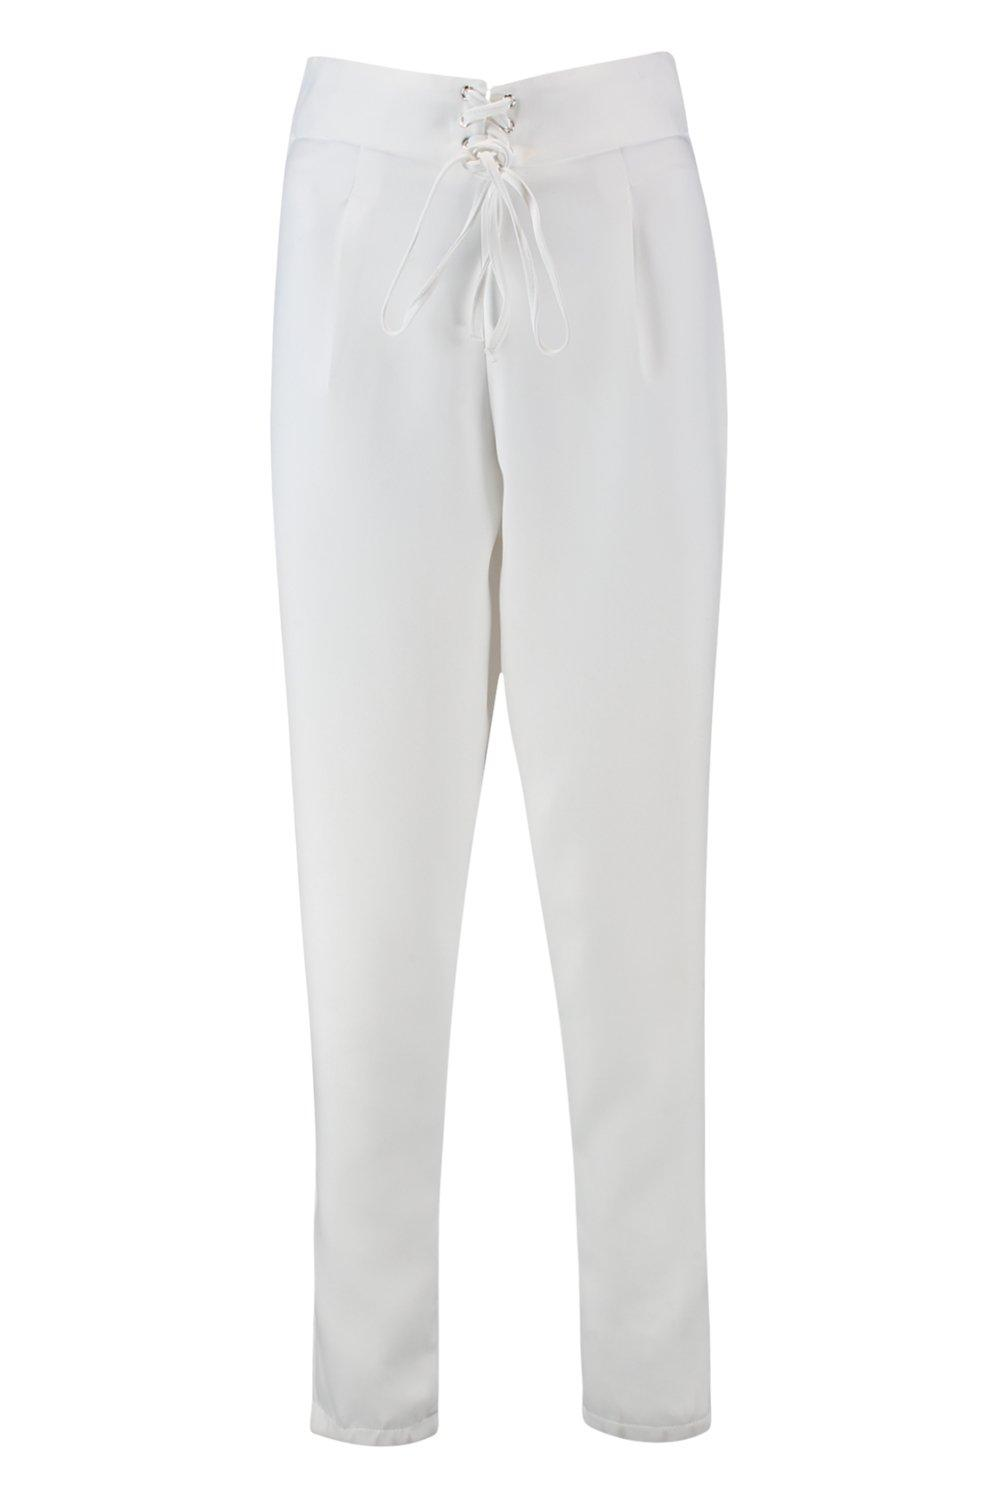 Trouser Woven Belted Tie white Front q0wt071